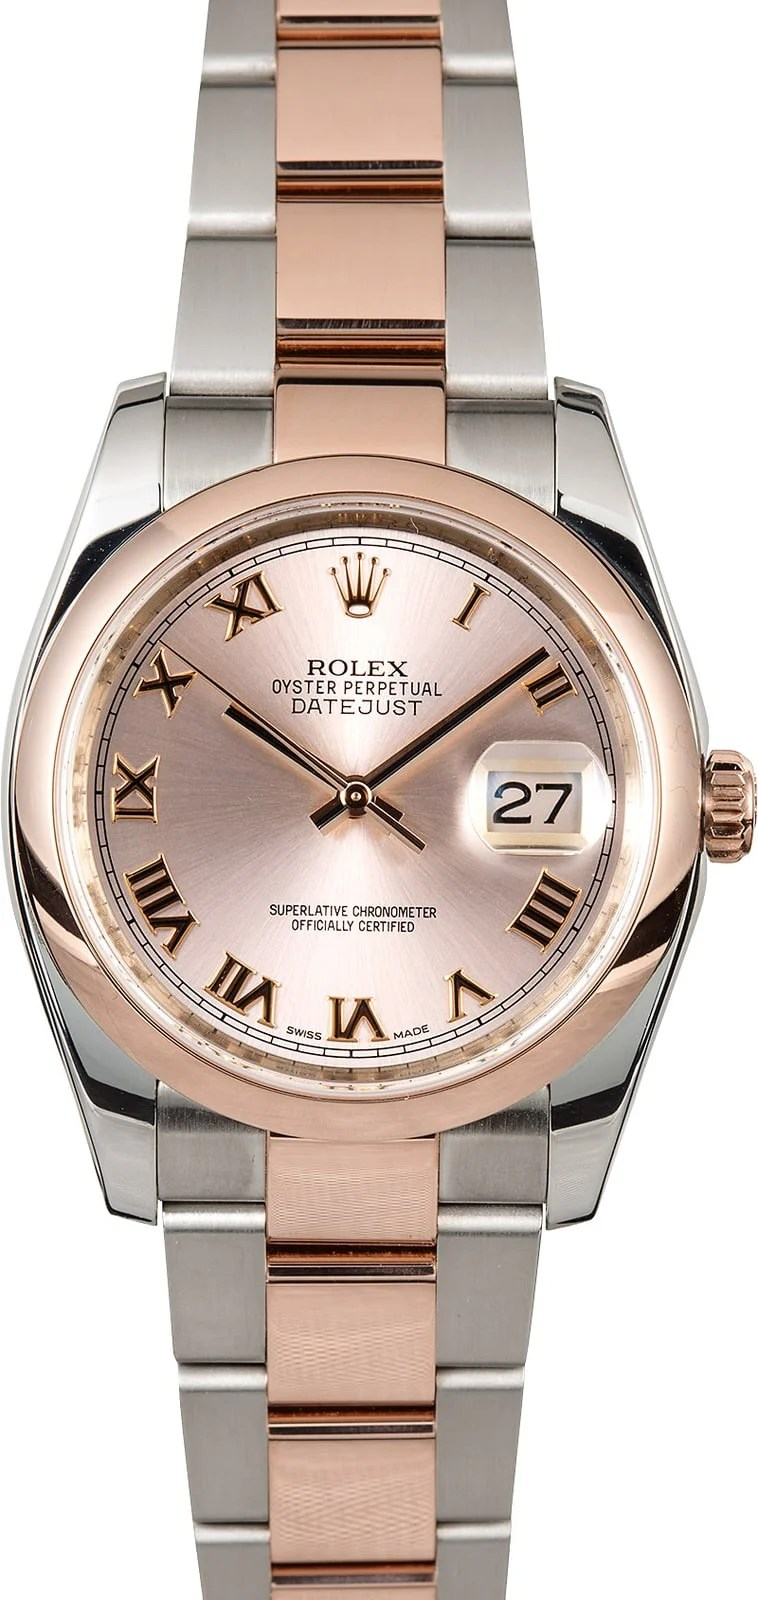 Rolex Oyster Perpetual Rose Gold Rolex Datejust 116201 Rose Gold Oyster